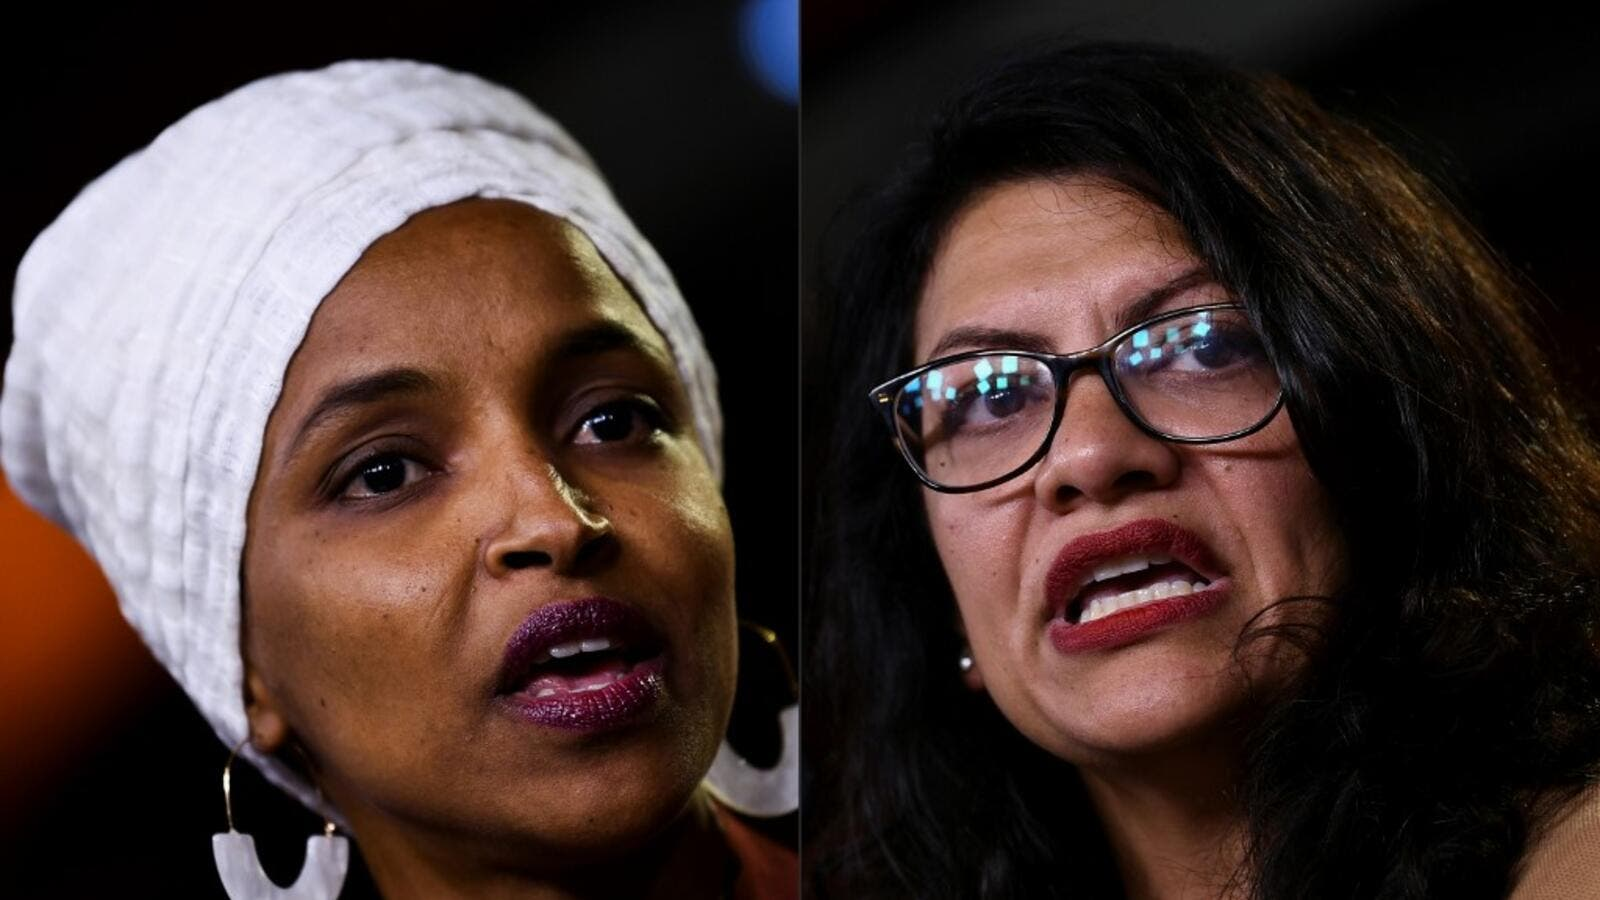 Democrat US Representatives Ilhan Abdullahi Omar (L) and Rashida Tlaib during a press conference, to address remarks made by US President Donald Trump earlier in the day, at the US Capitol in Washington, DC on July 15, 2019. (AFP/ File Photo)